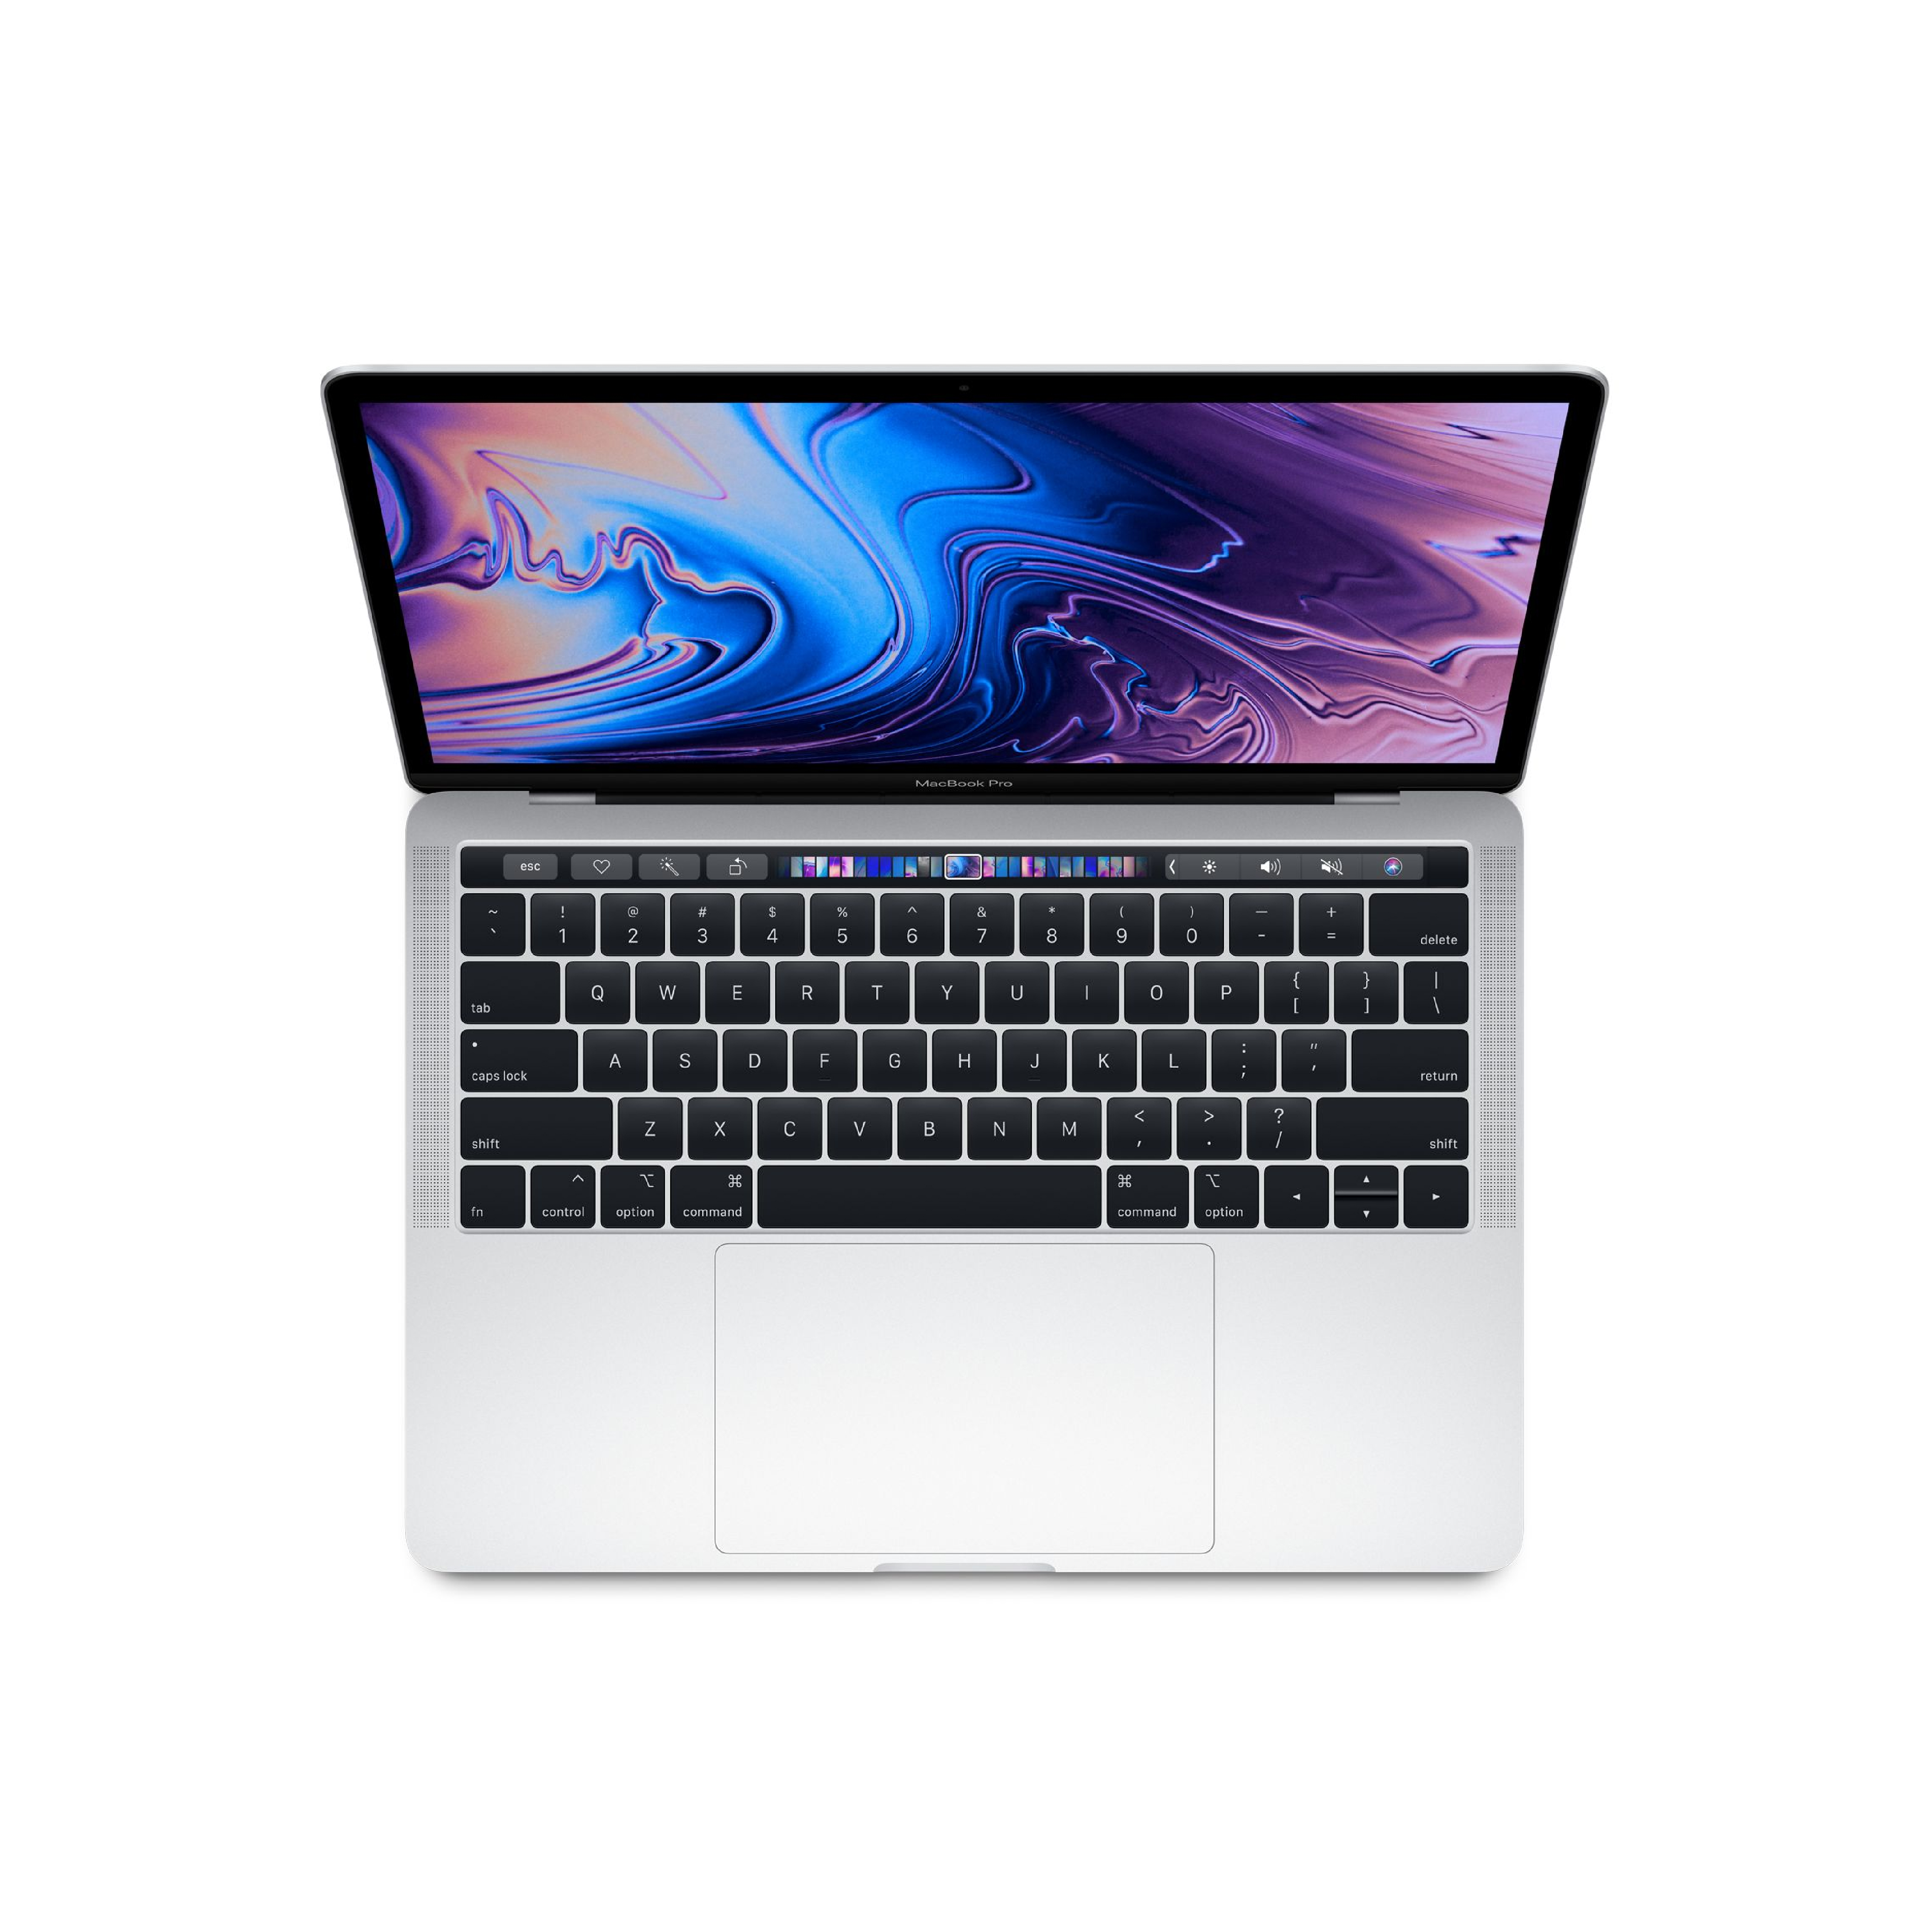 MacBook Proro 13